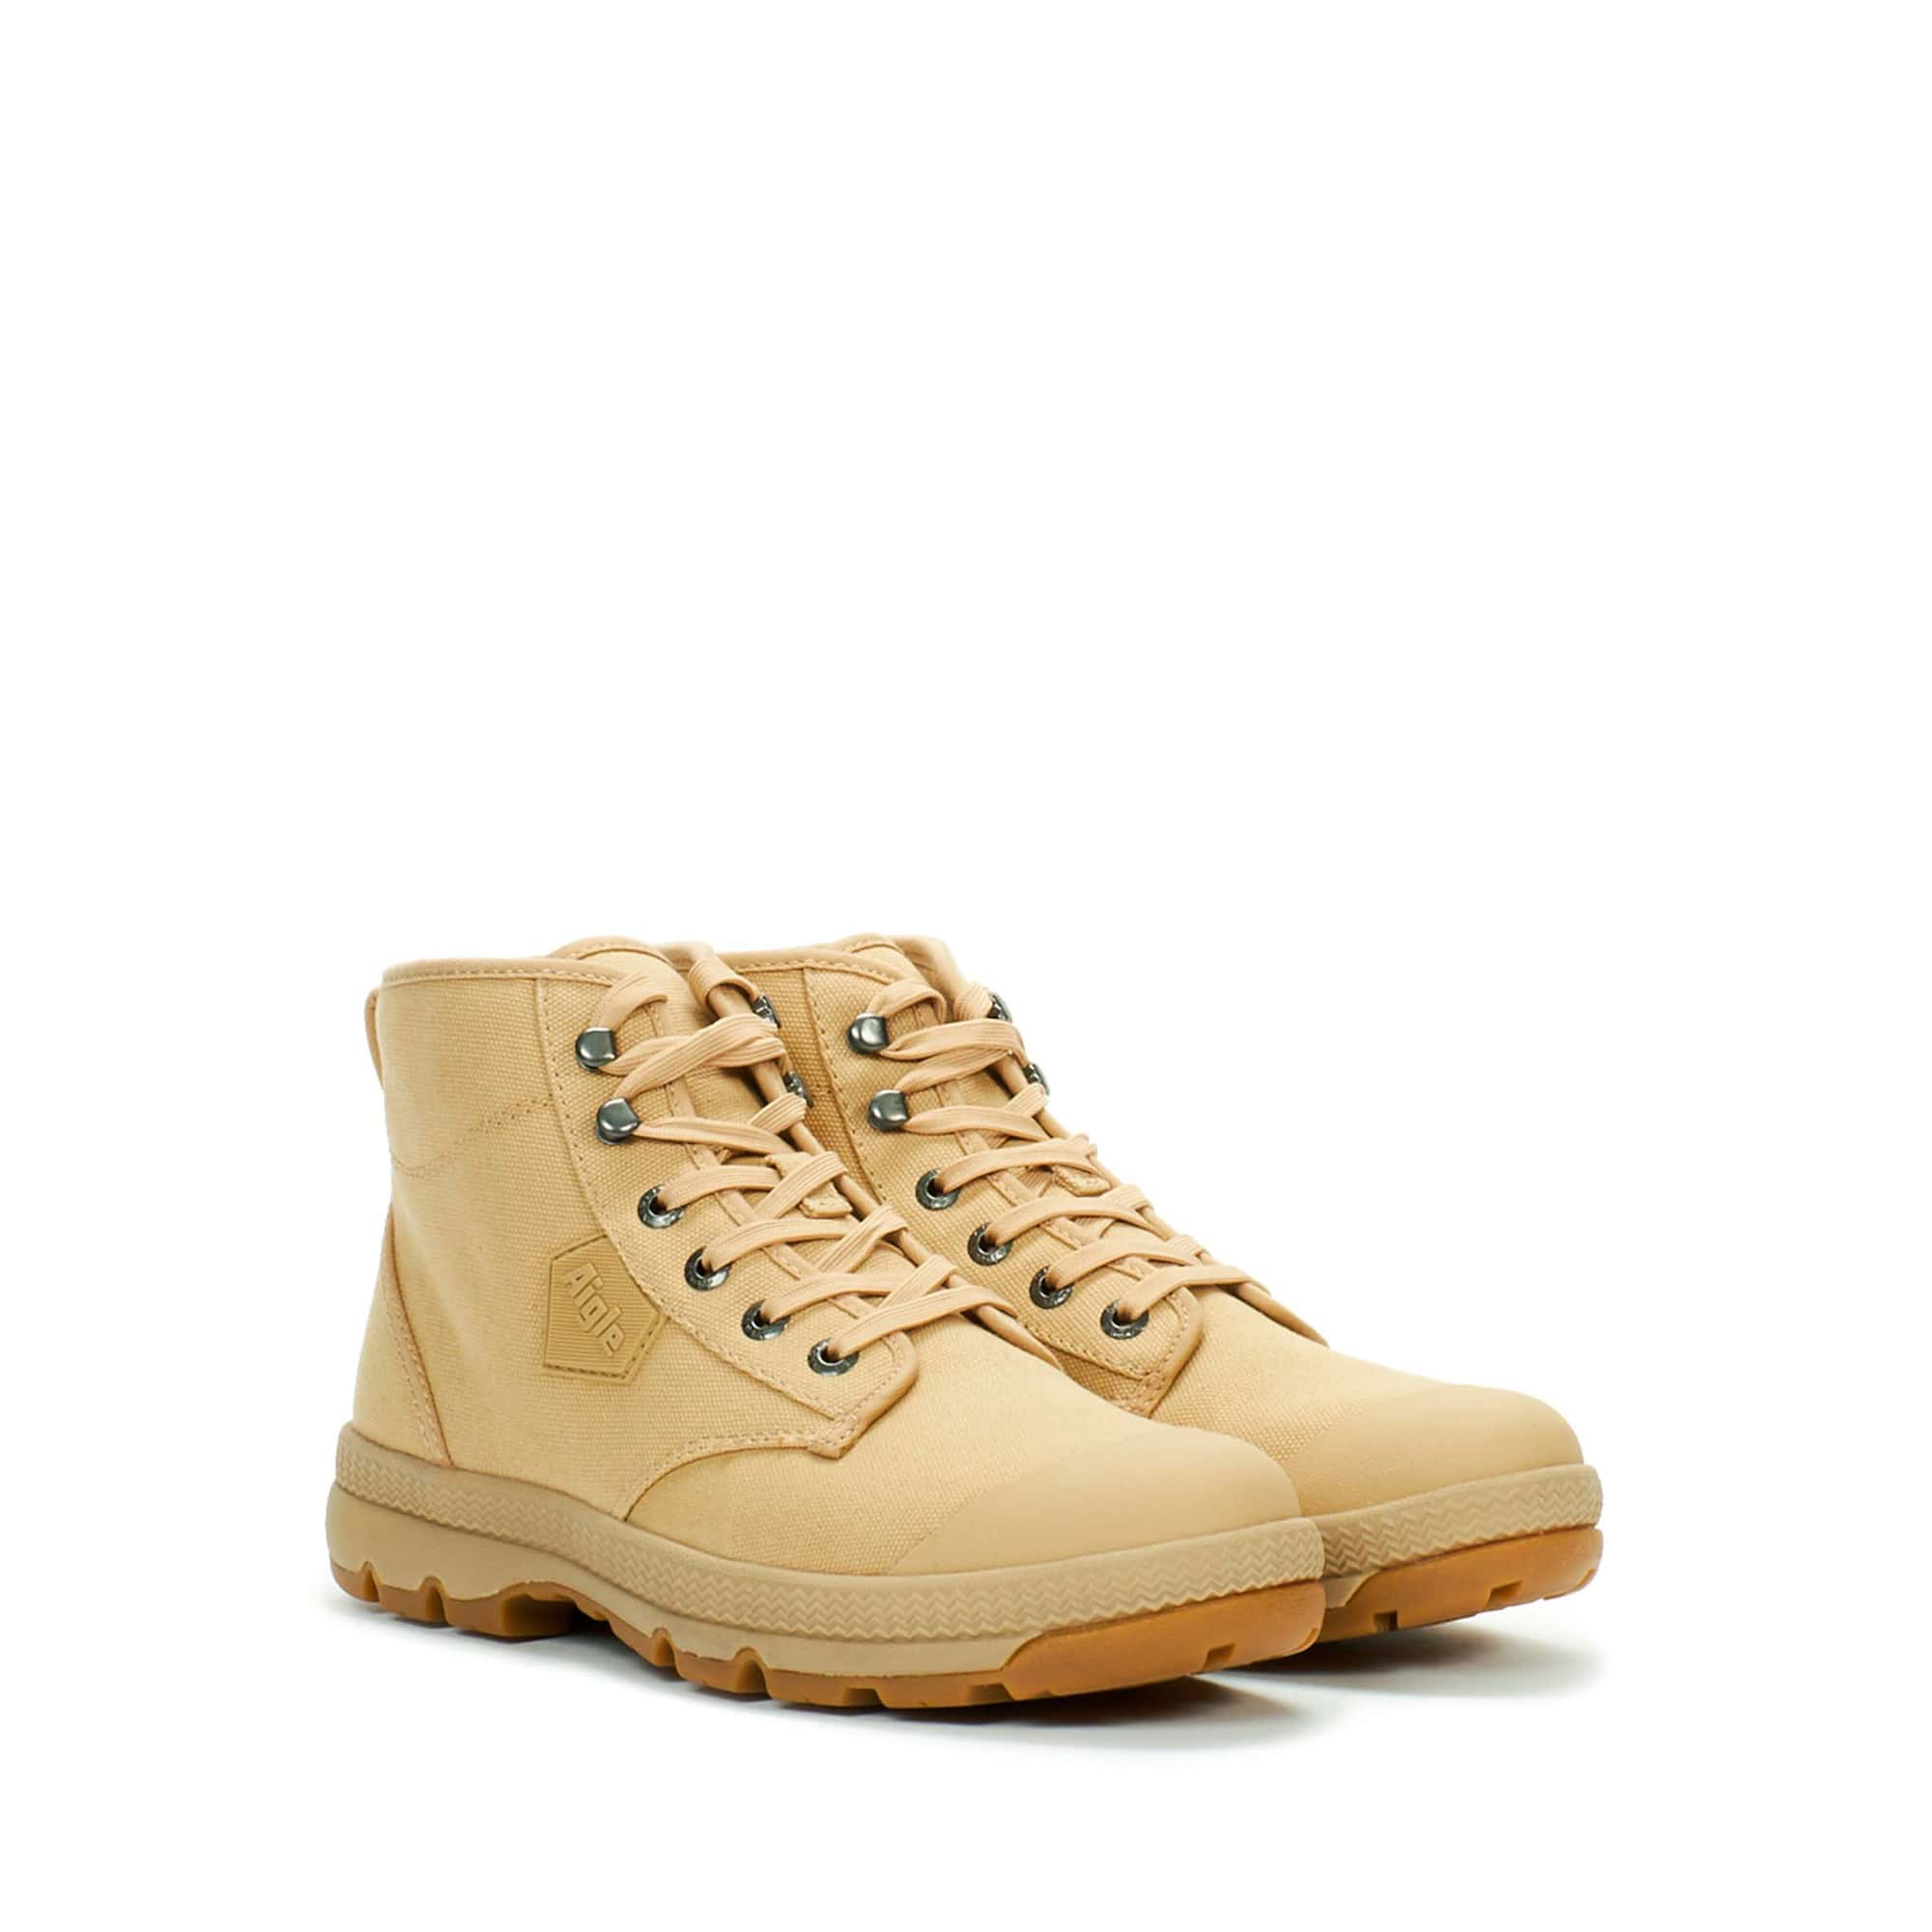 Storefront Homme Chaussures Toile Fr Catalog Légères Ultra Aigle ybYf67g